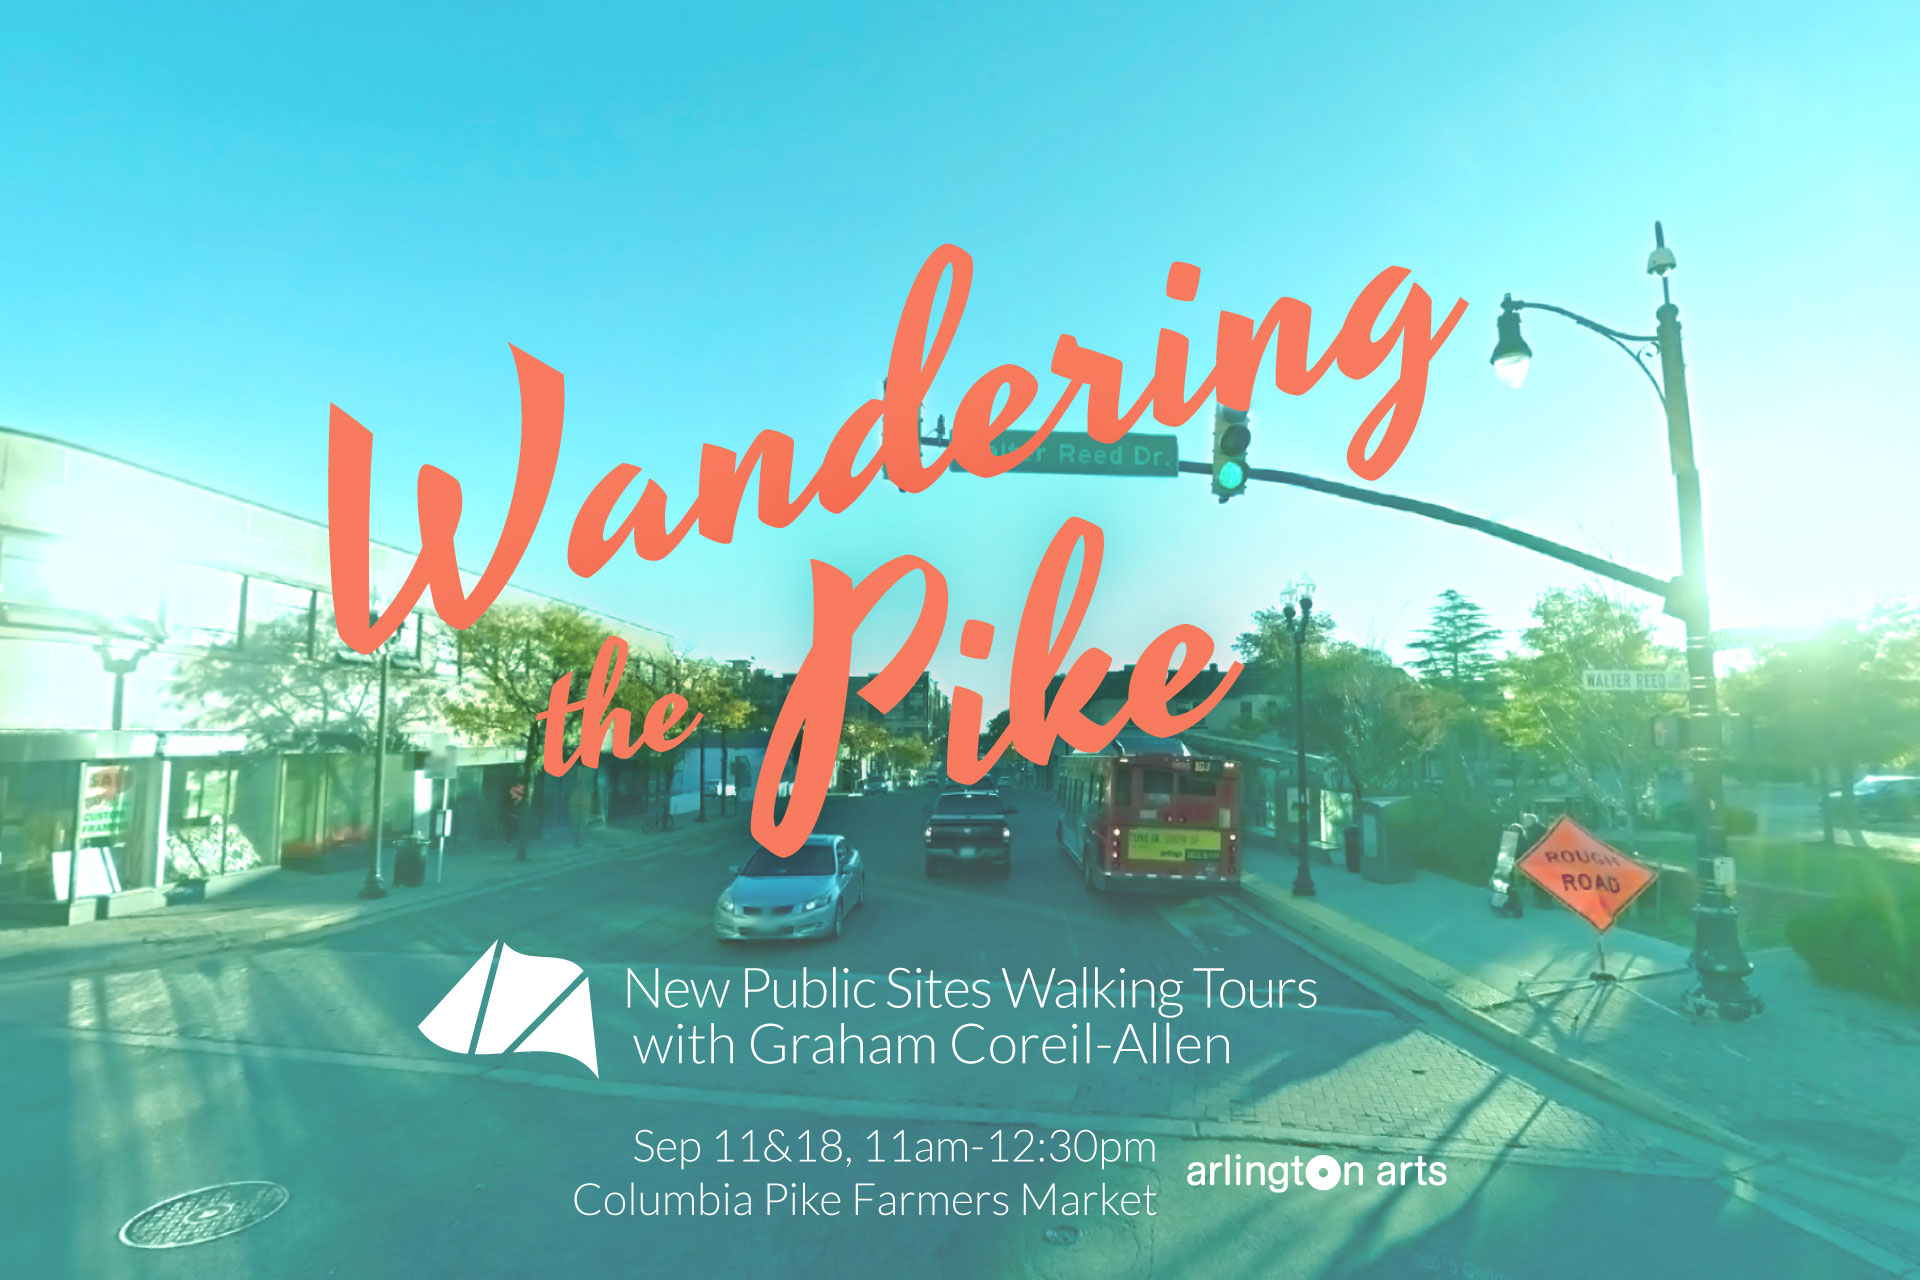 Wandering the Pike